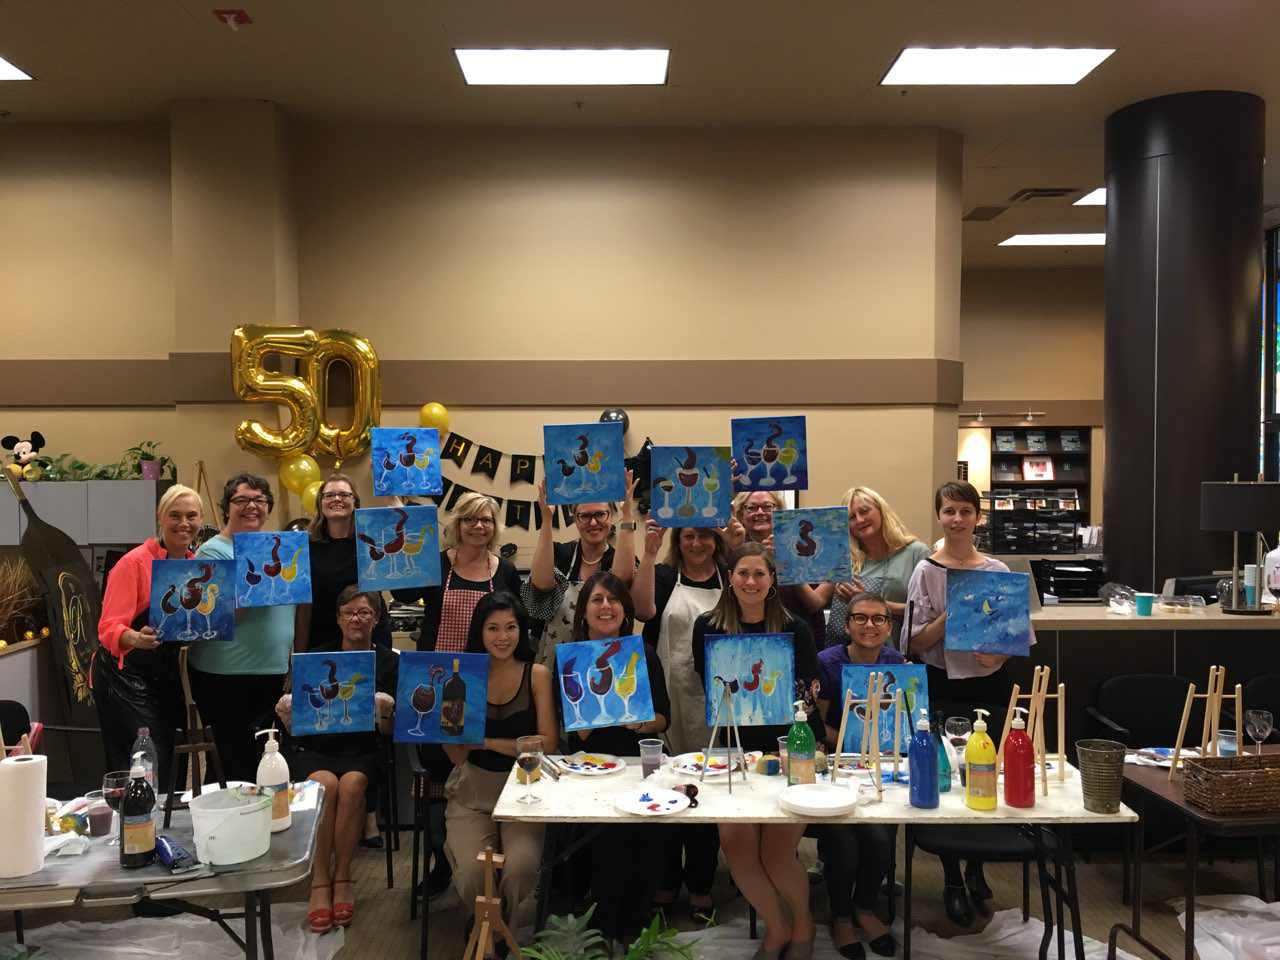 Rhonda's Birthday - Paint Night!